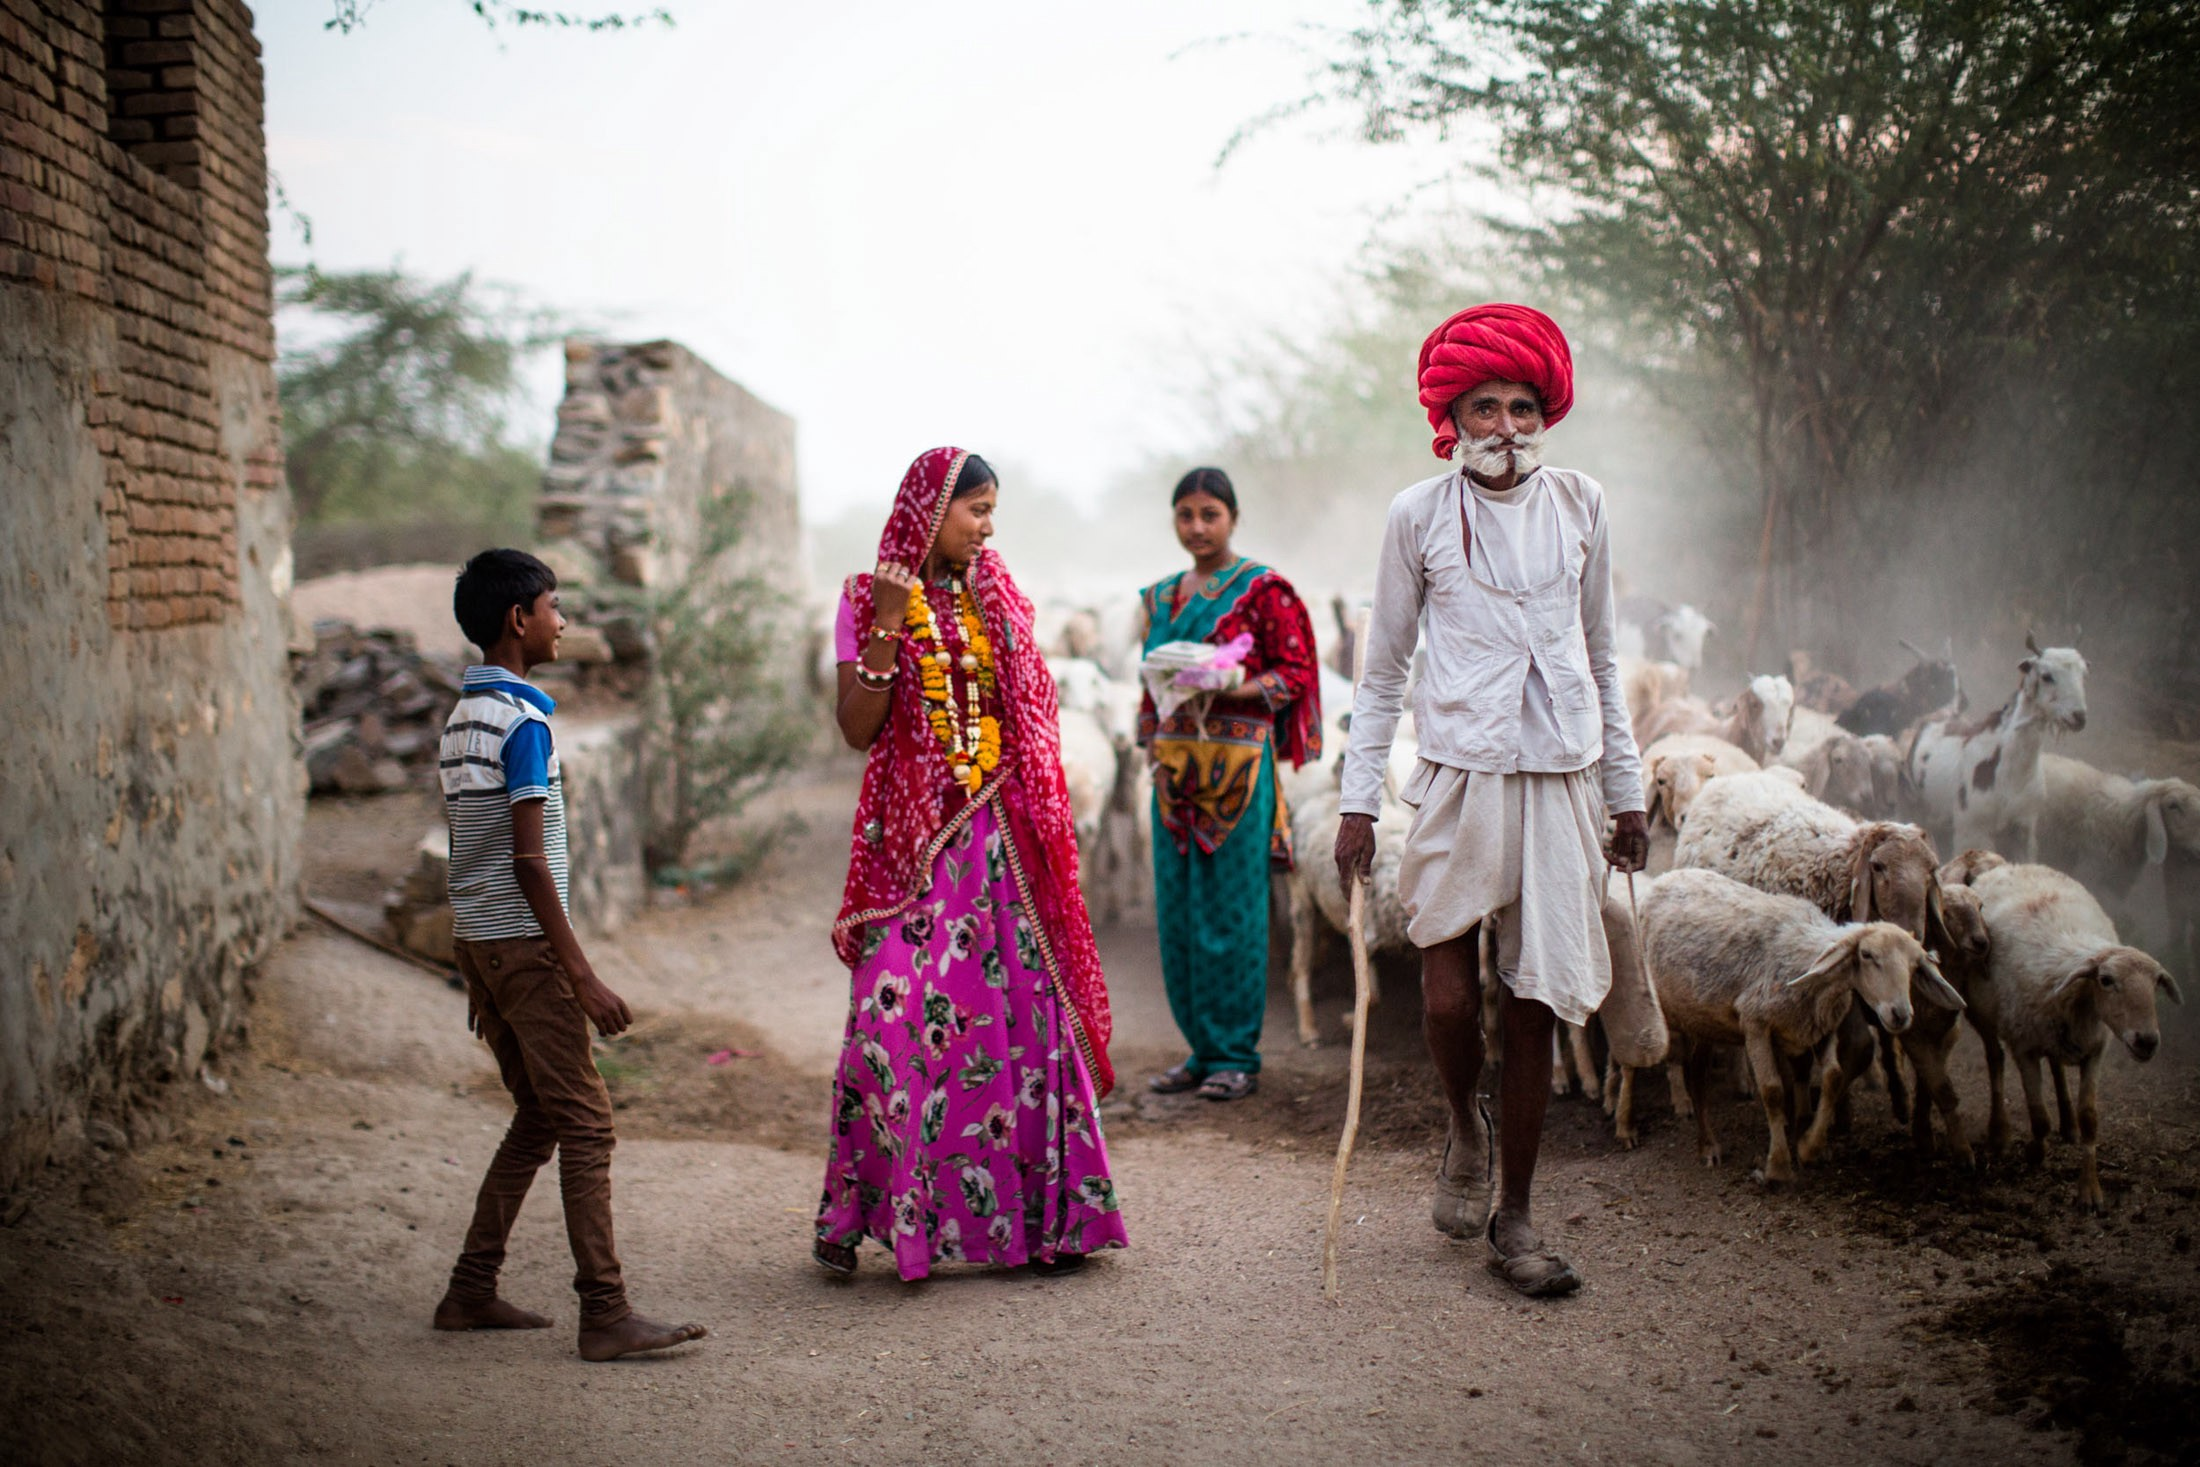 Rabari are camel traders and herders of livestock. Most of these tribal nomads have settled in agricultural villages, like Sena, in the deasert state of Rajasthan.